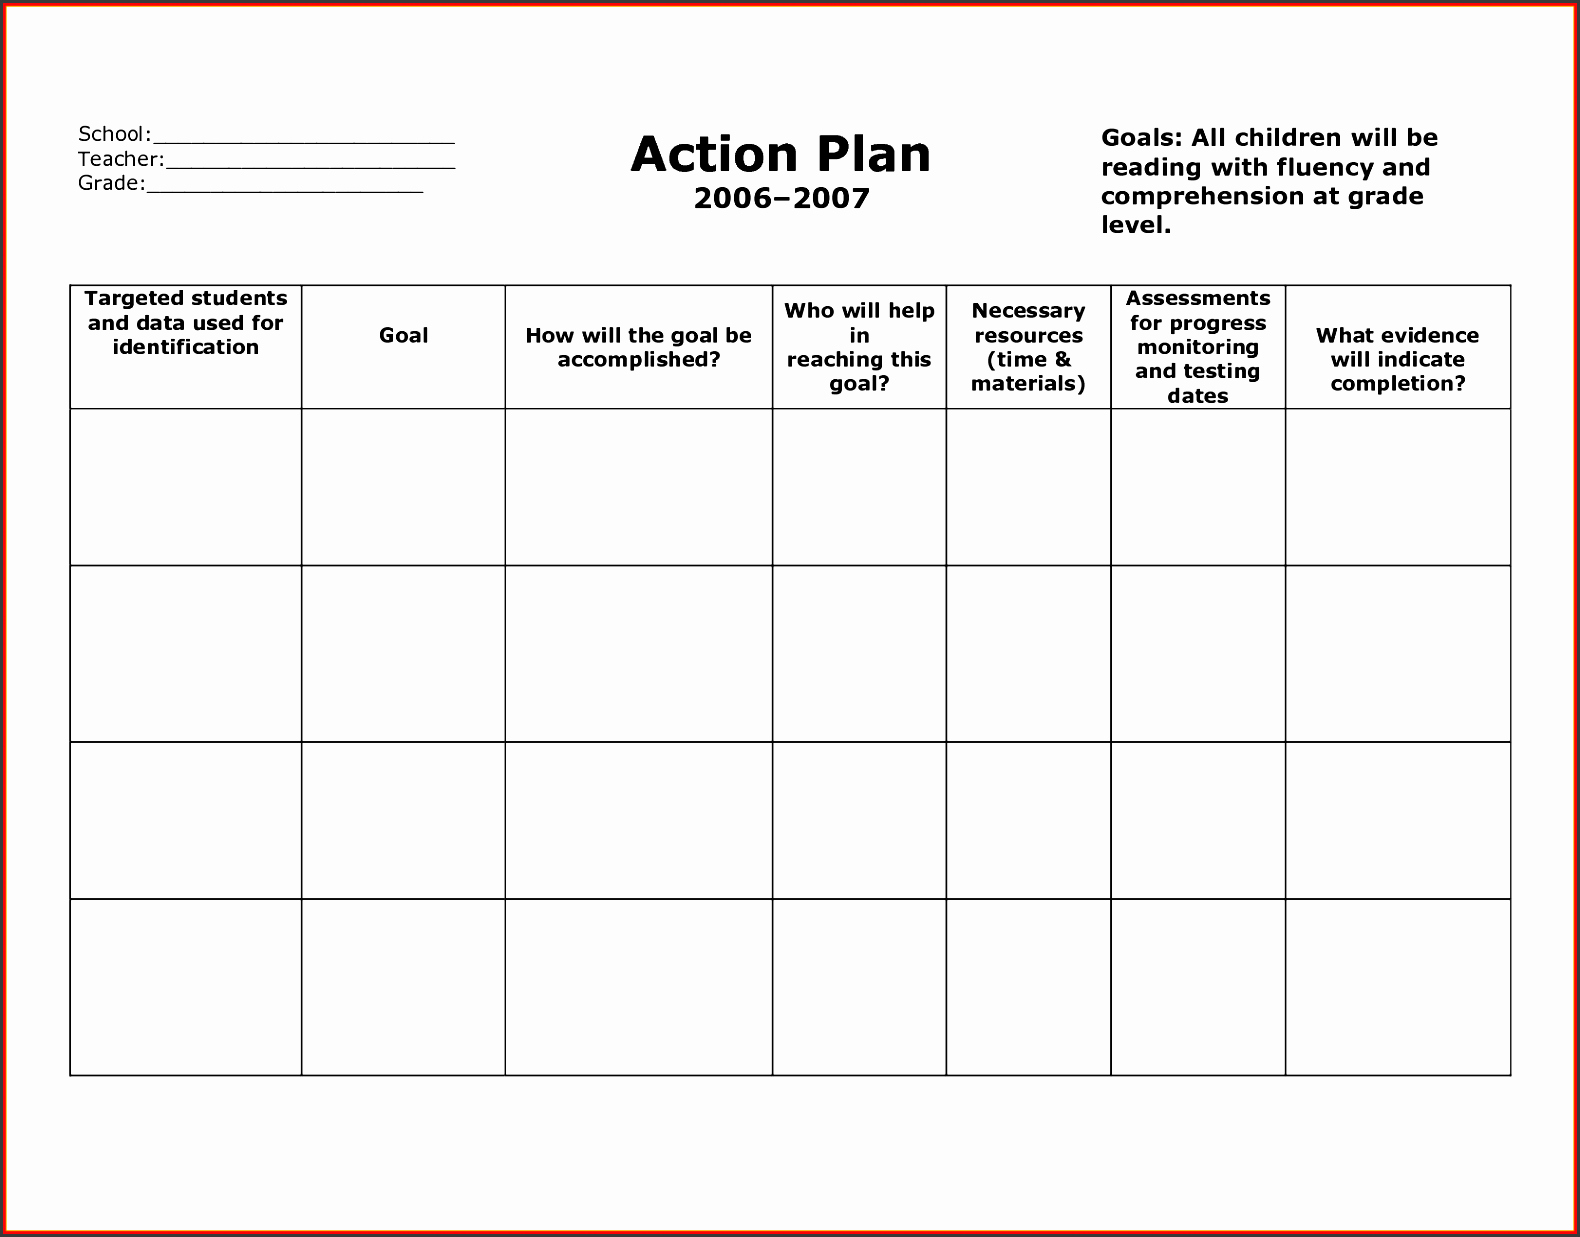 Personal Action Plan Template Fresh 6 General Action Plan Template Sampletemplatess